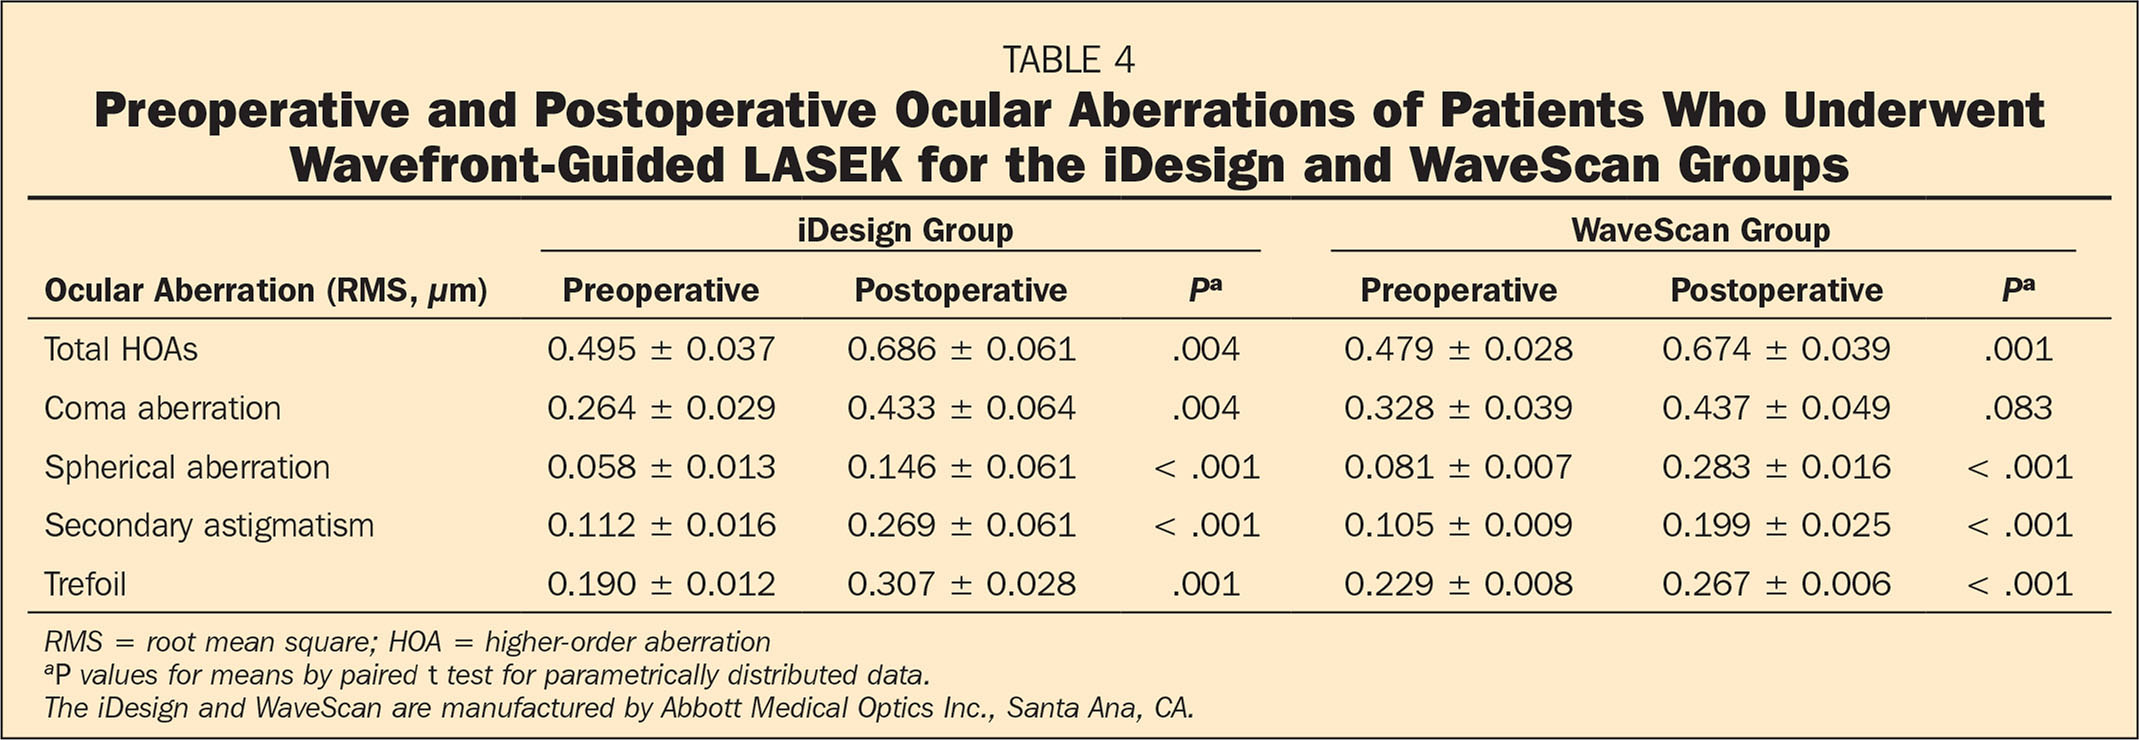 Preoperative and Postoperative Ocular Aberrations of Patients Who Underwent Wavefront-Guided LASEK for the iDesign and WaveScan Groups